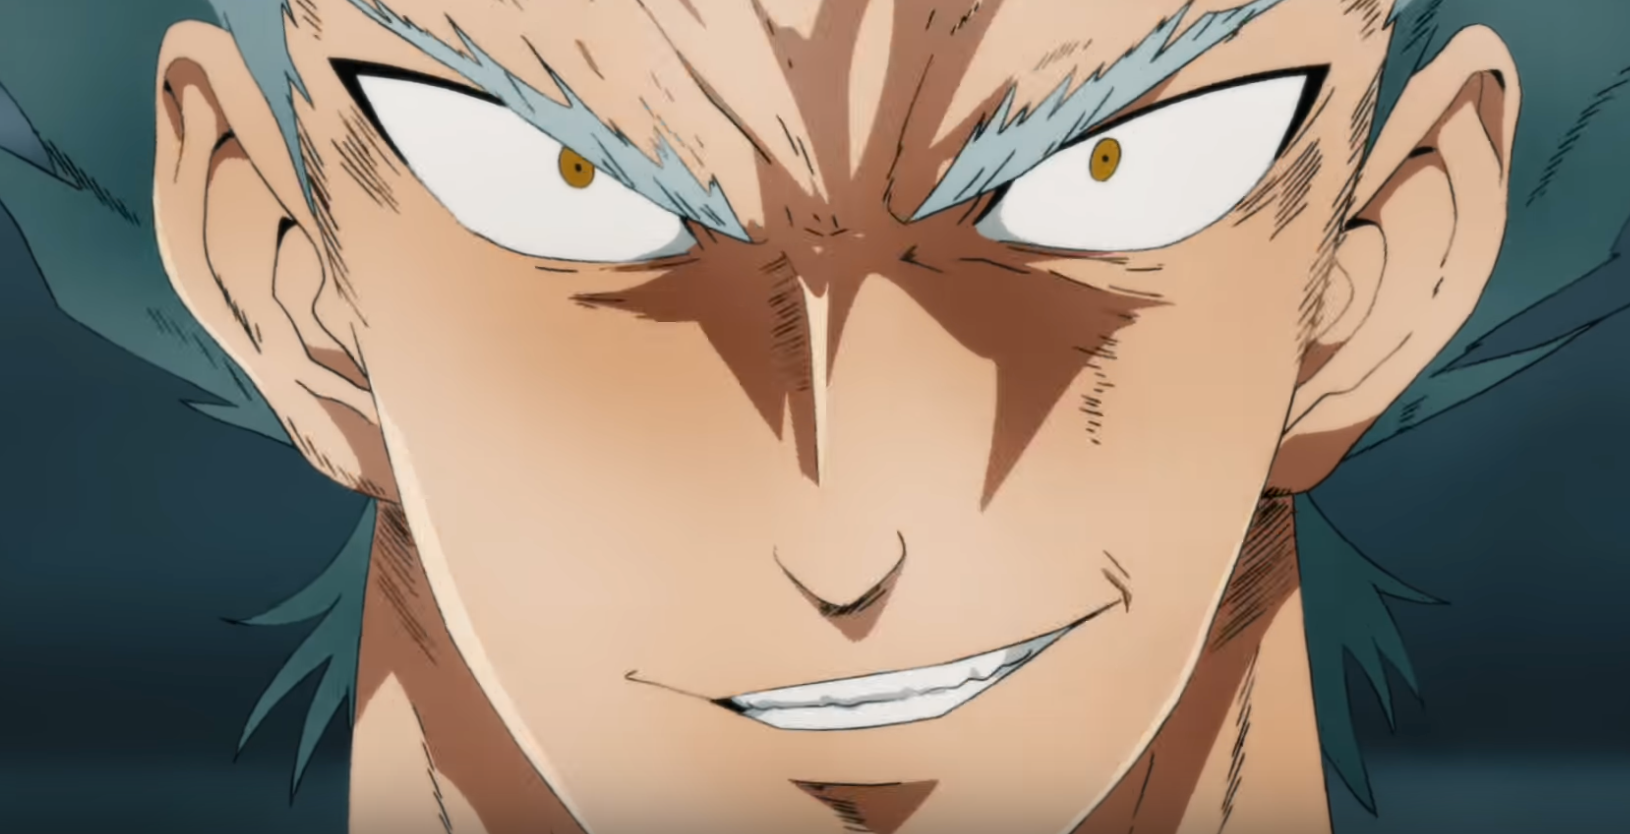 One-Punch Man Villain Garou Unleashes His True Power | CBR